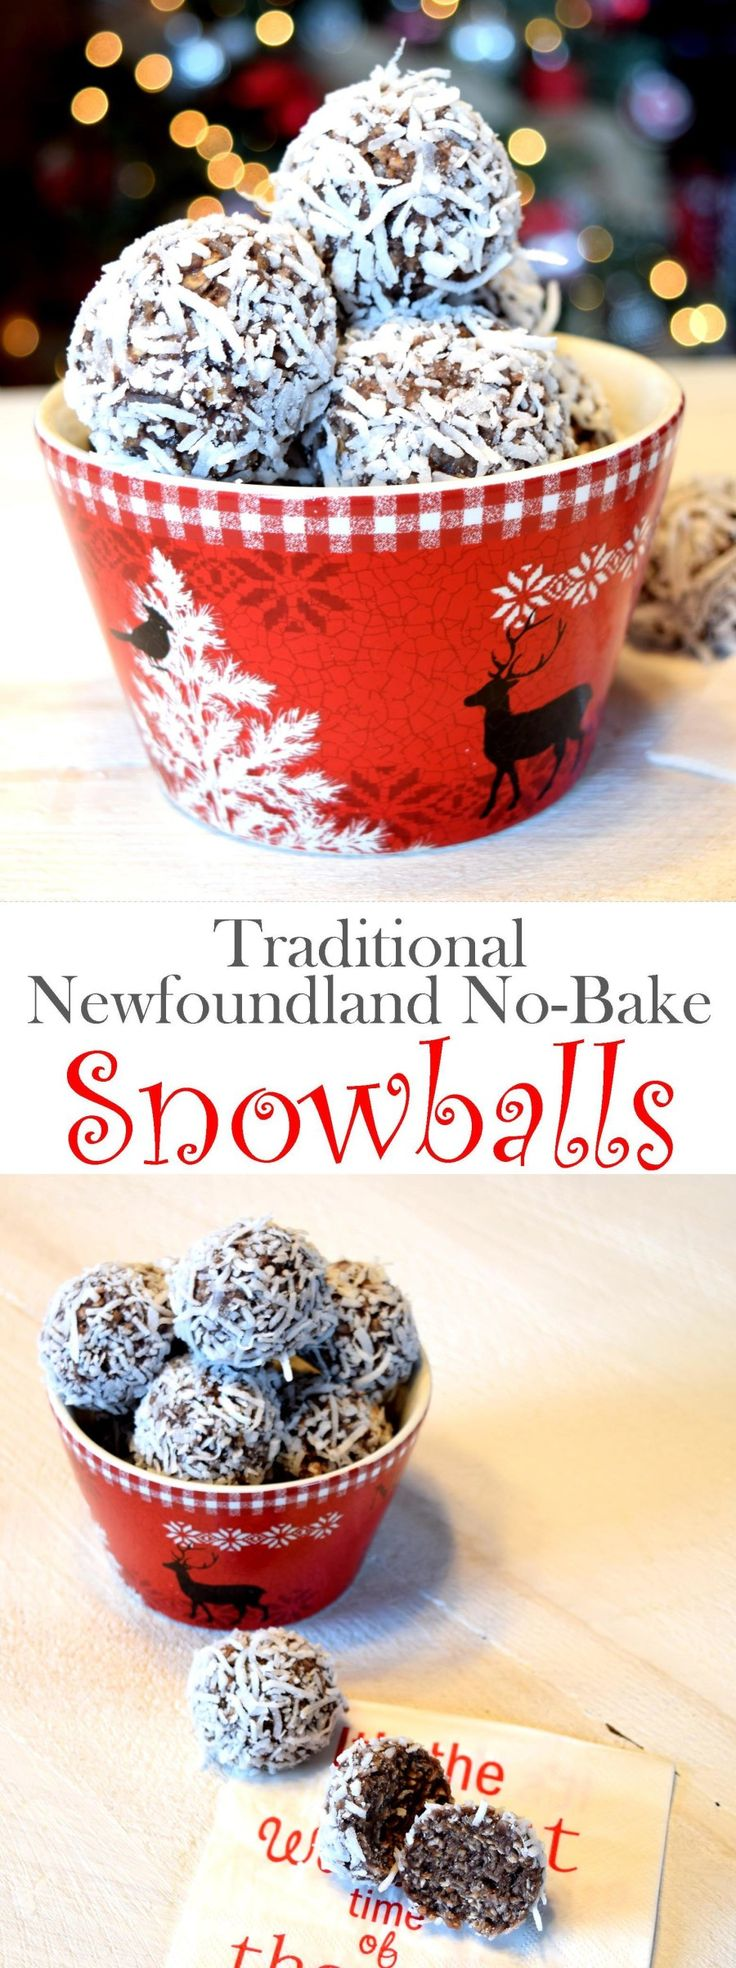 **Traditional Newfoundland No-Bake Snowballs with cake mix